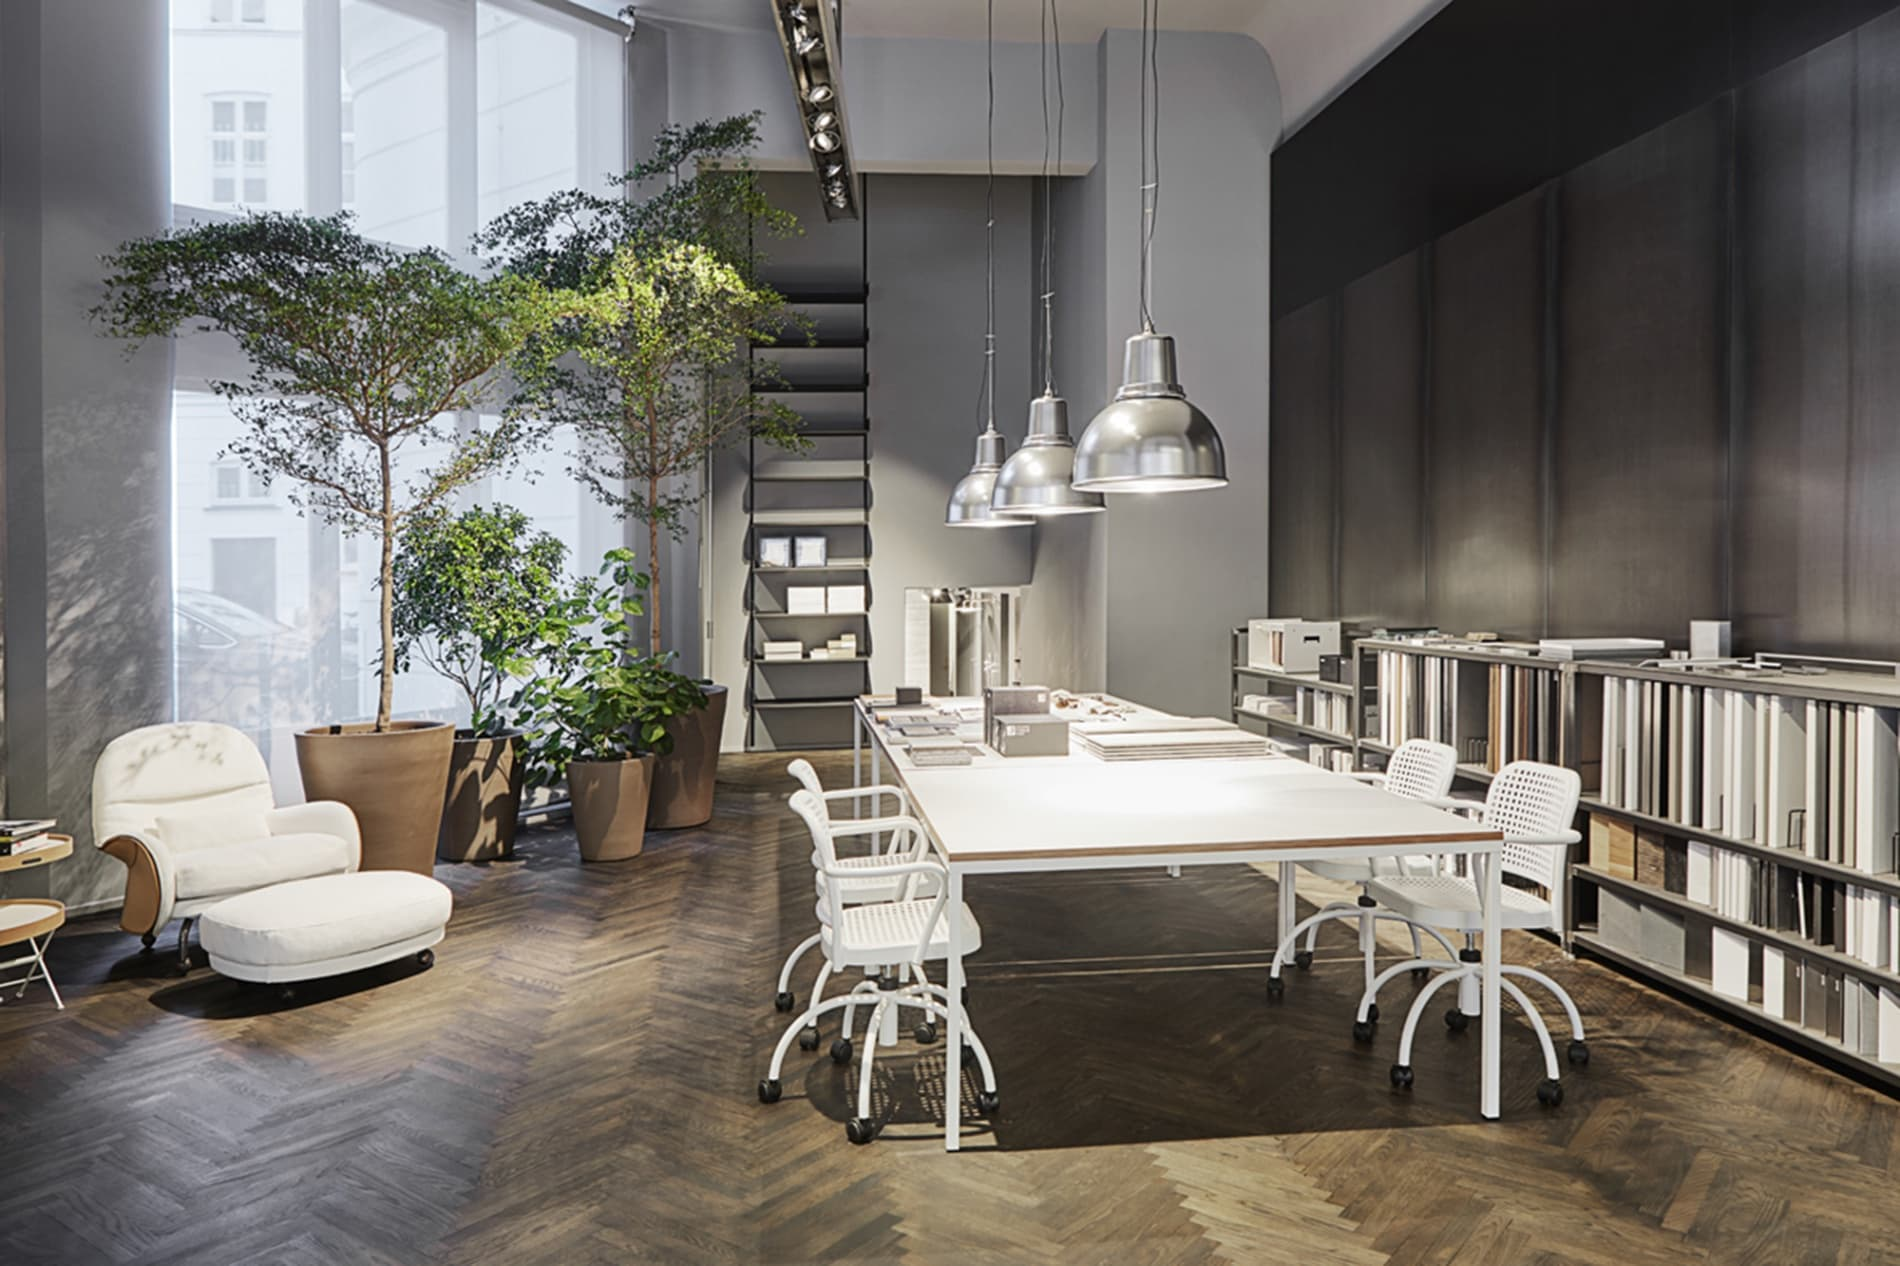 The De Padova collection at Boffi Copenhagen